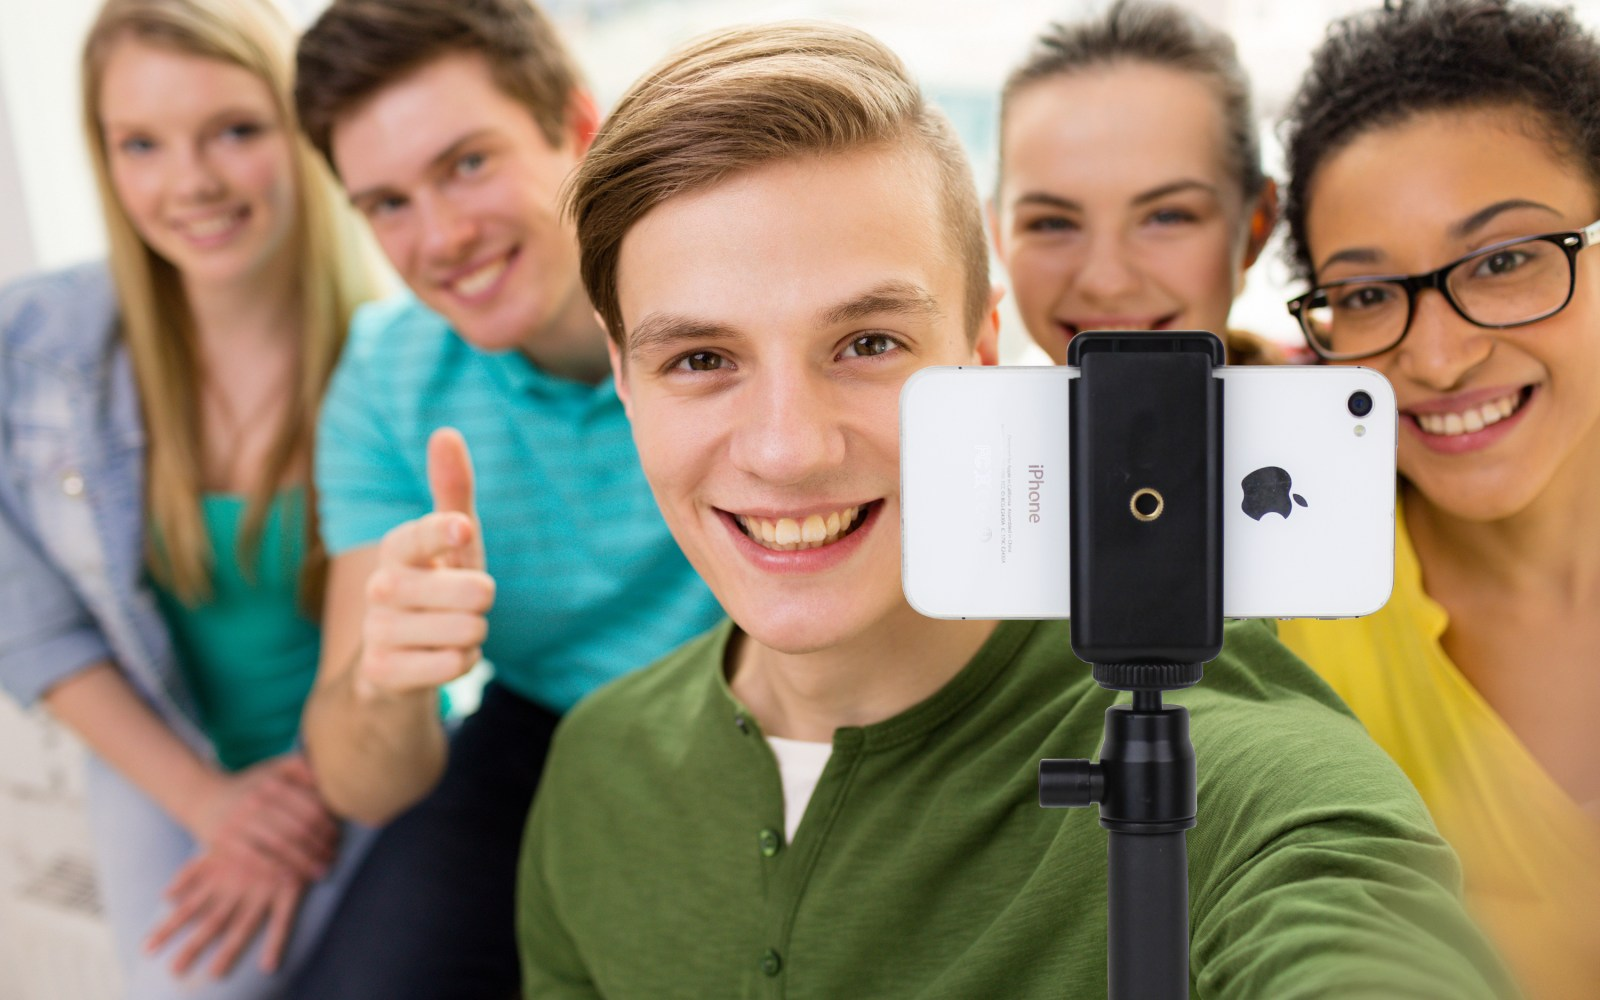 Satechi releases new Bluetooth extension arm for capturing exceptional selfies from your smartphone